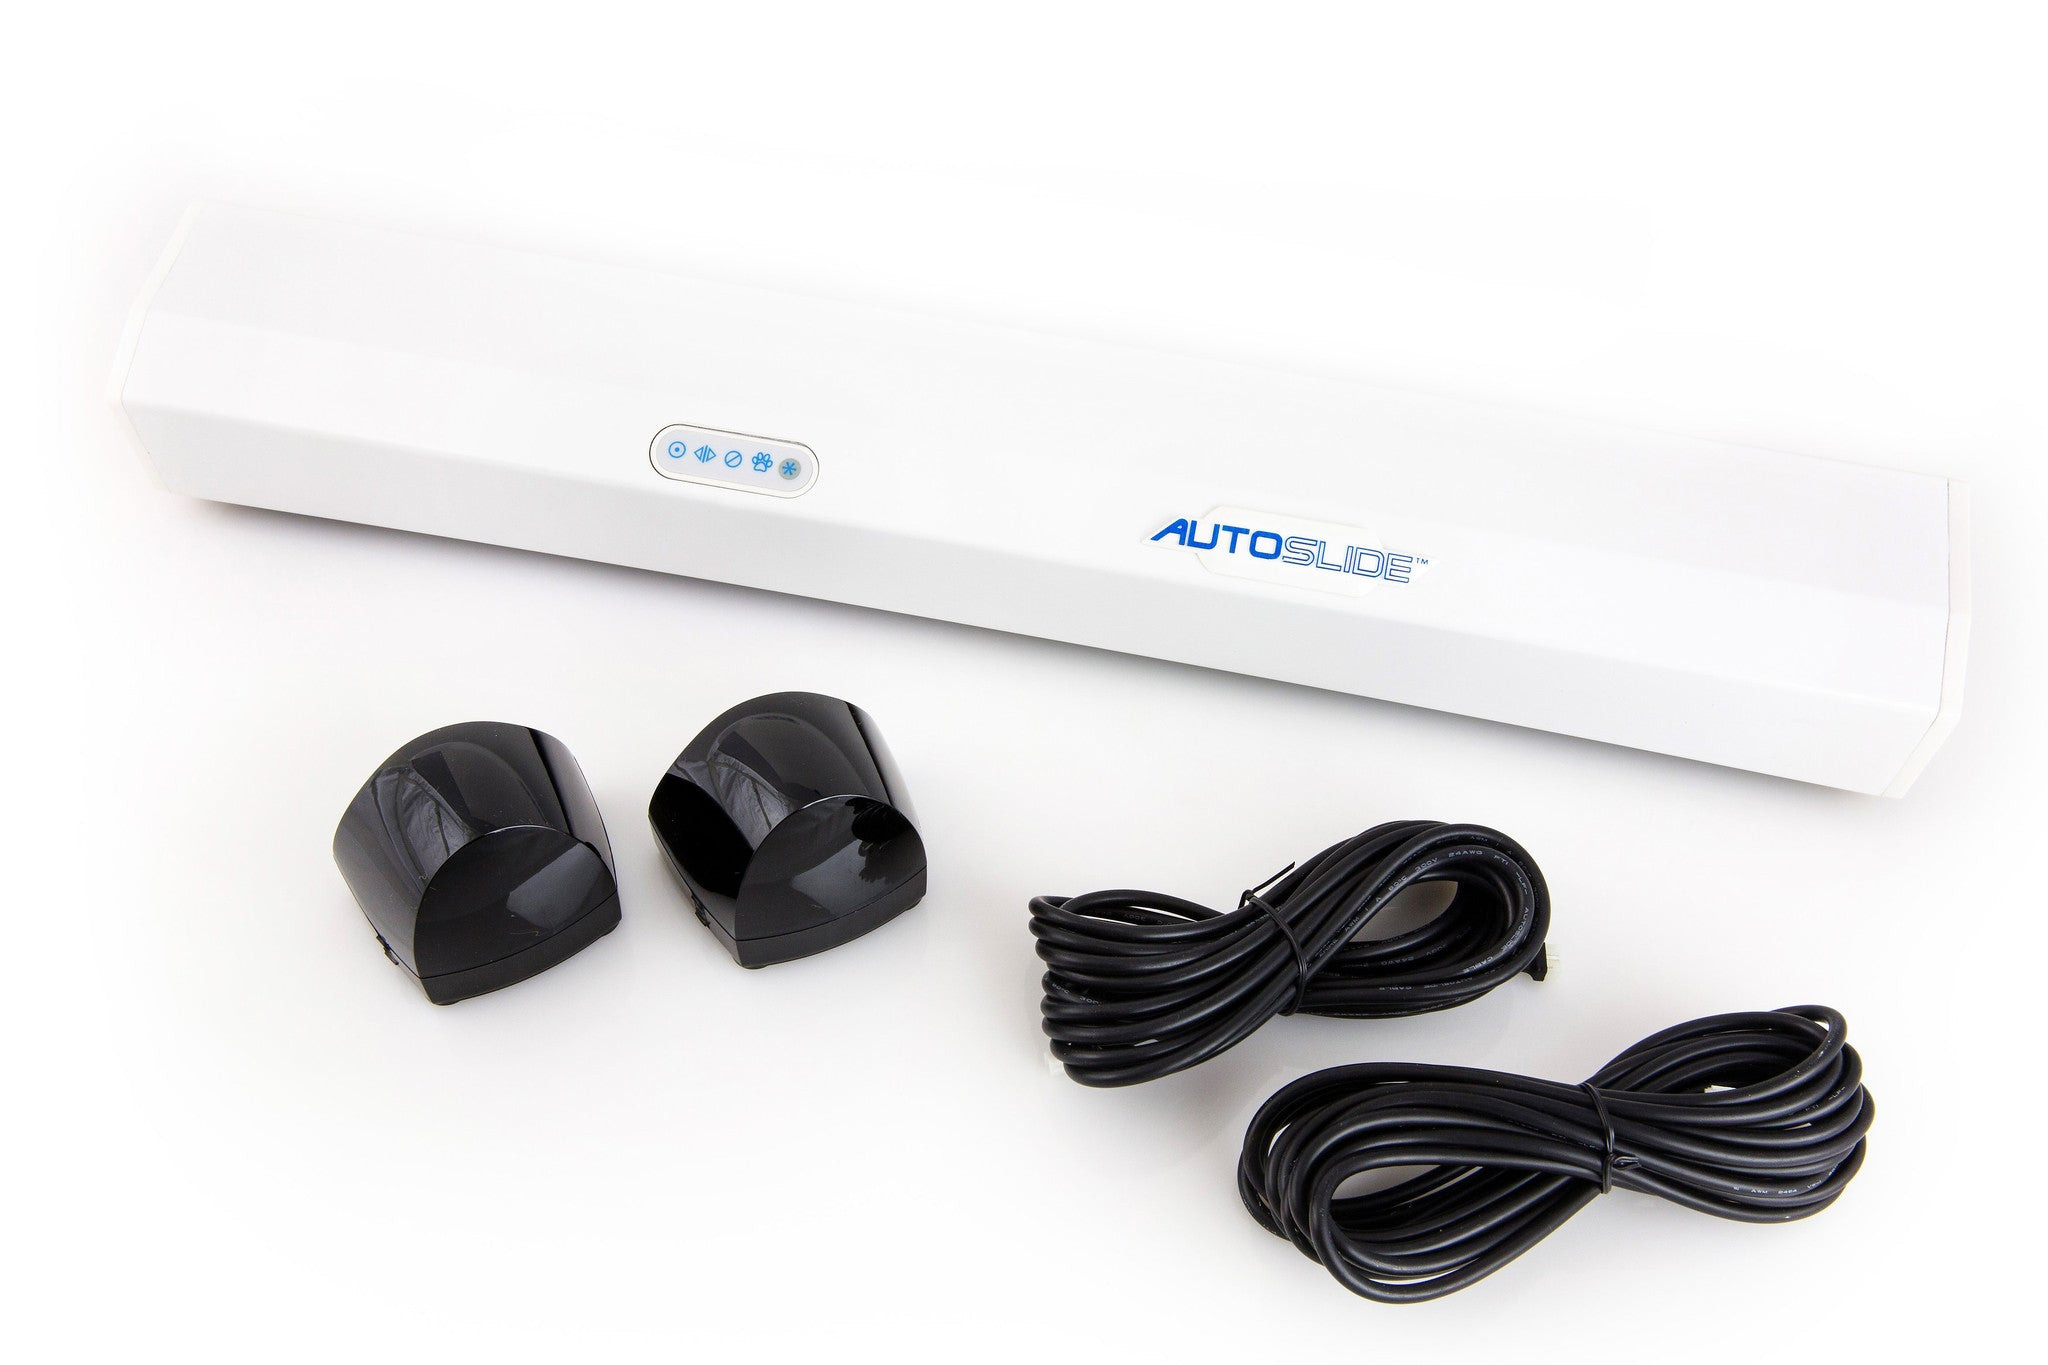 Autoslide Hardwired Infrared Door Kit